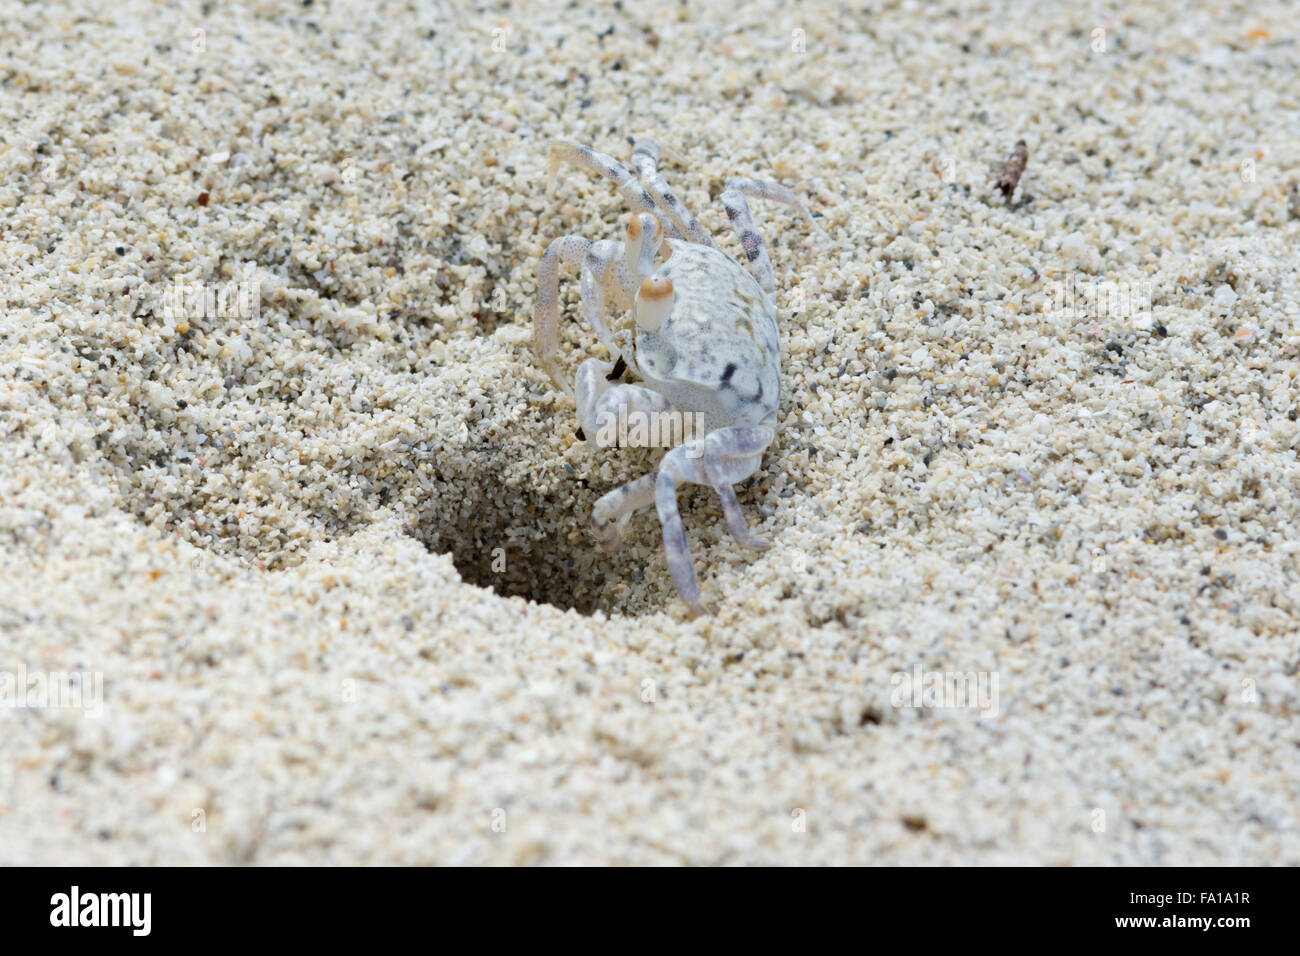 a-ghost-crab-digging-its-burrow-on-a-bea